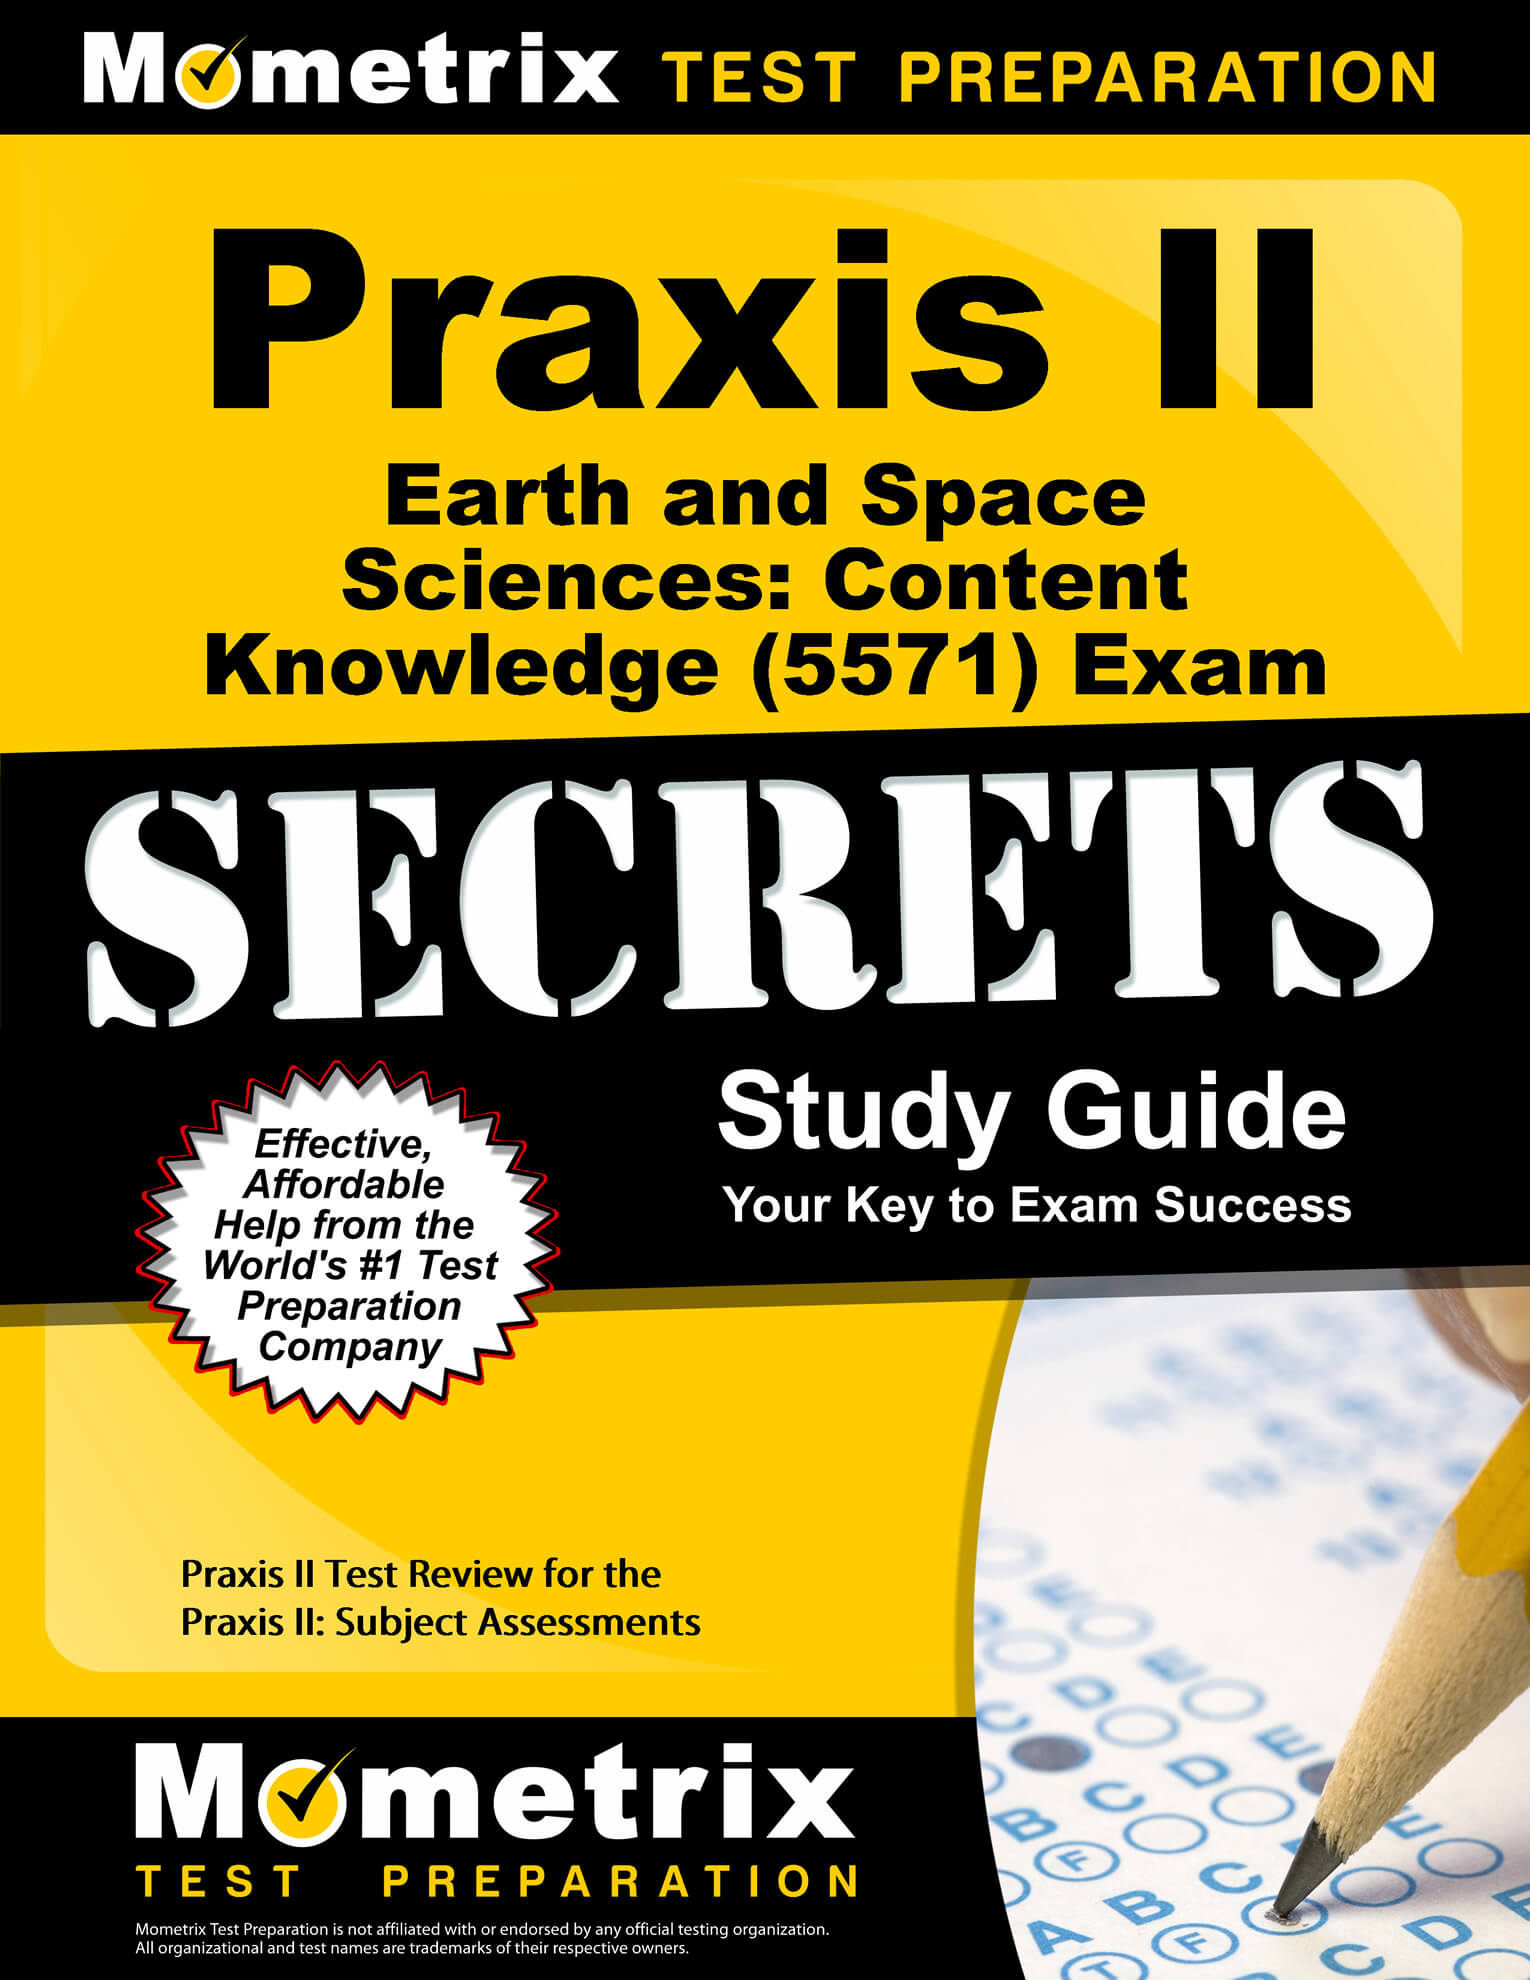 Praxis II Earth and Space Sciences: Content Knowledge Study Guide